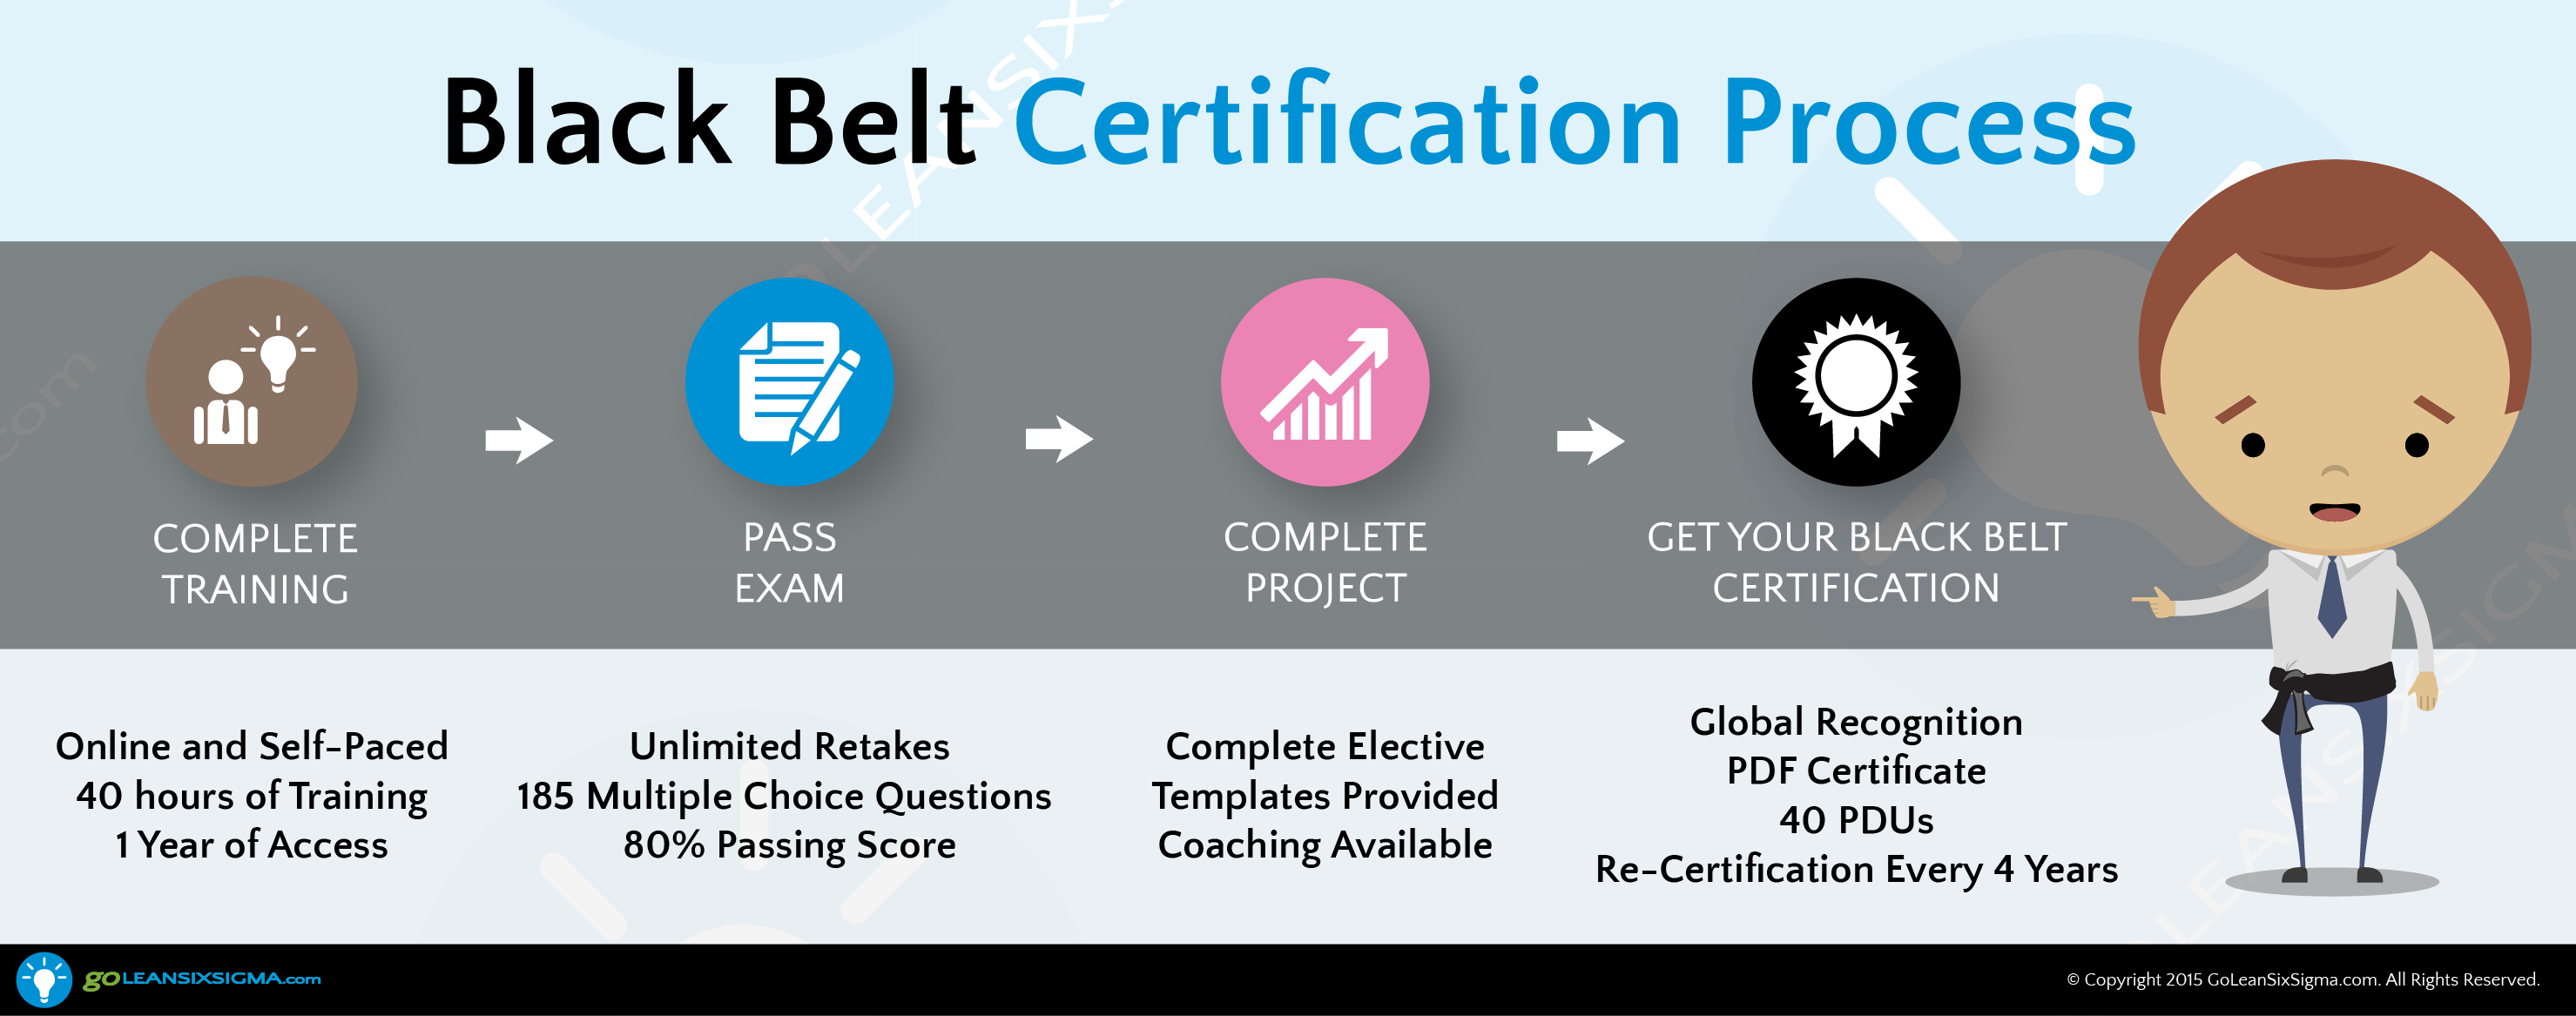 Black belt certification process black belt training get the most practical easy to understand and enjoyable black belt training certification available and start improving your organization today xflitez Gallery